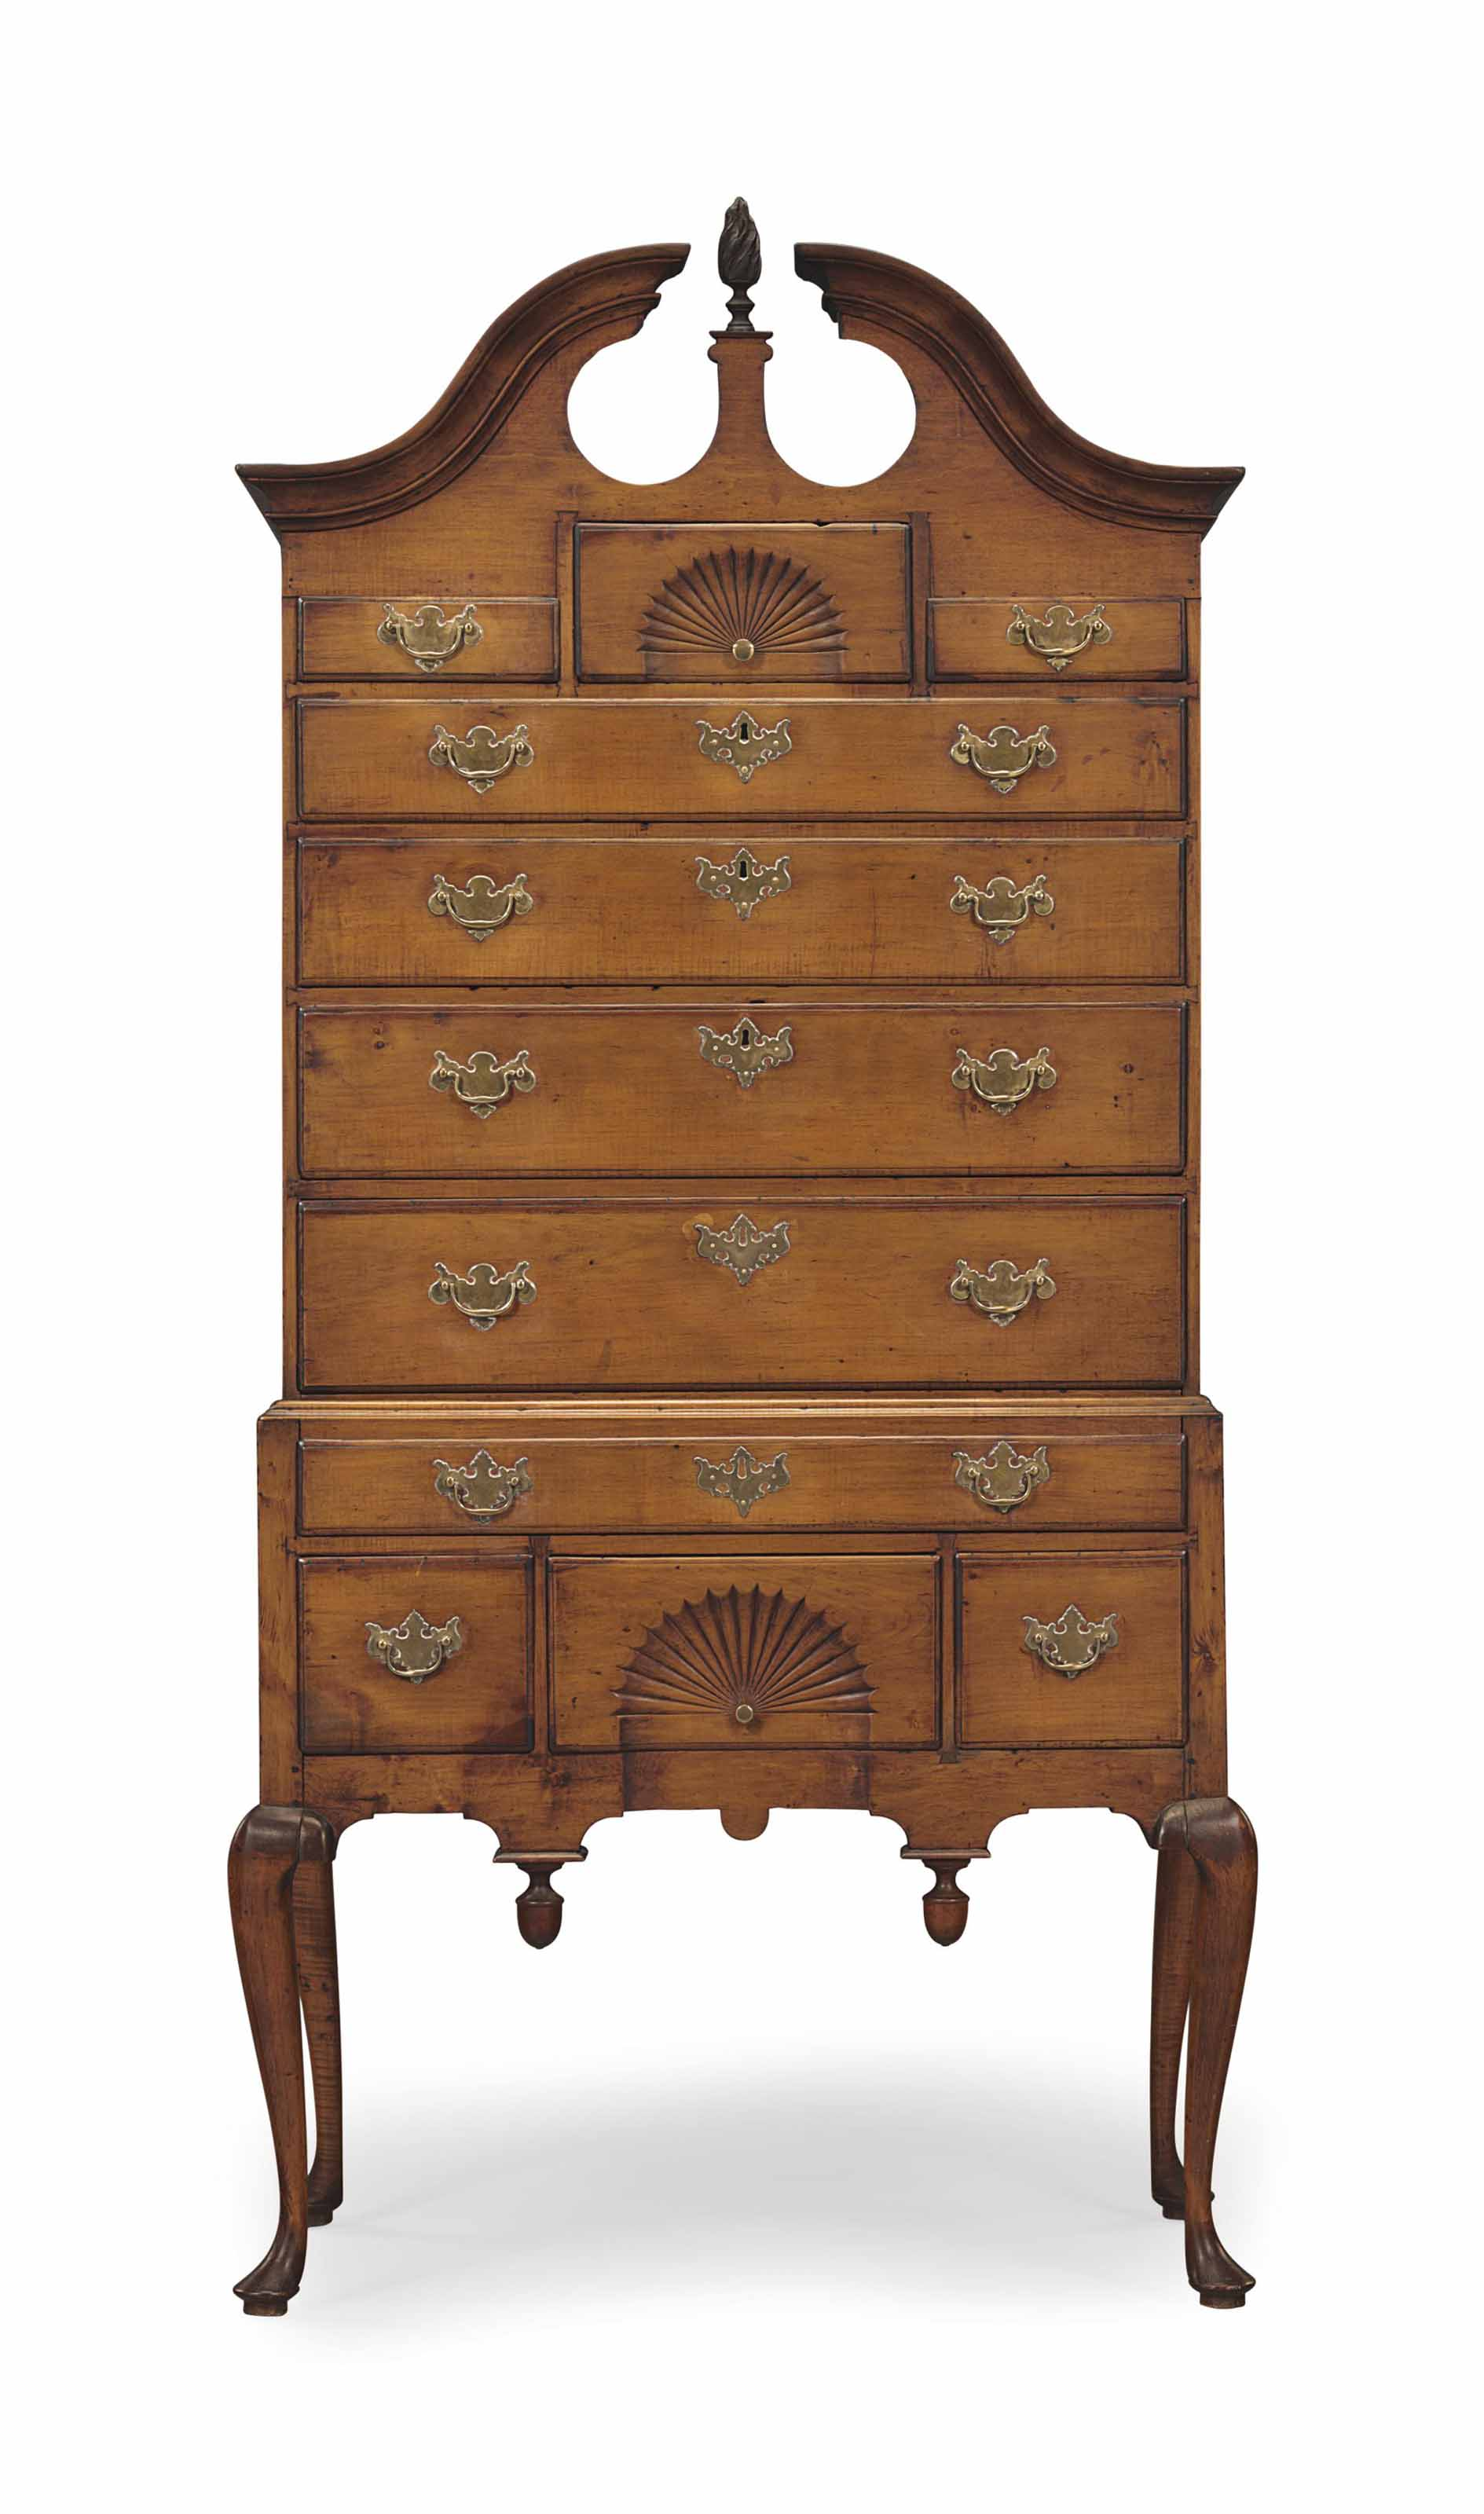 A queen anne carved and figured maple high chest of